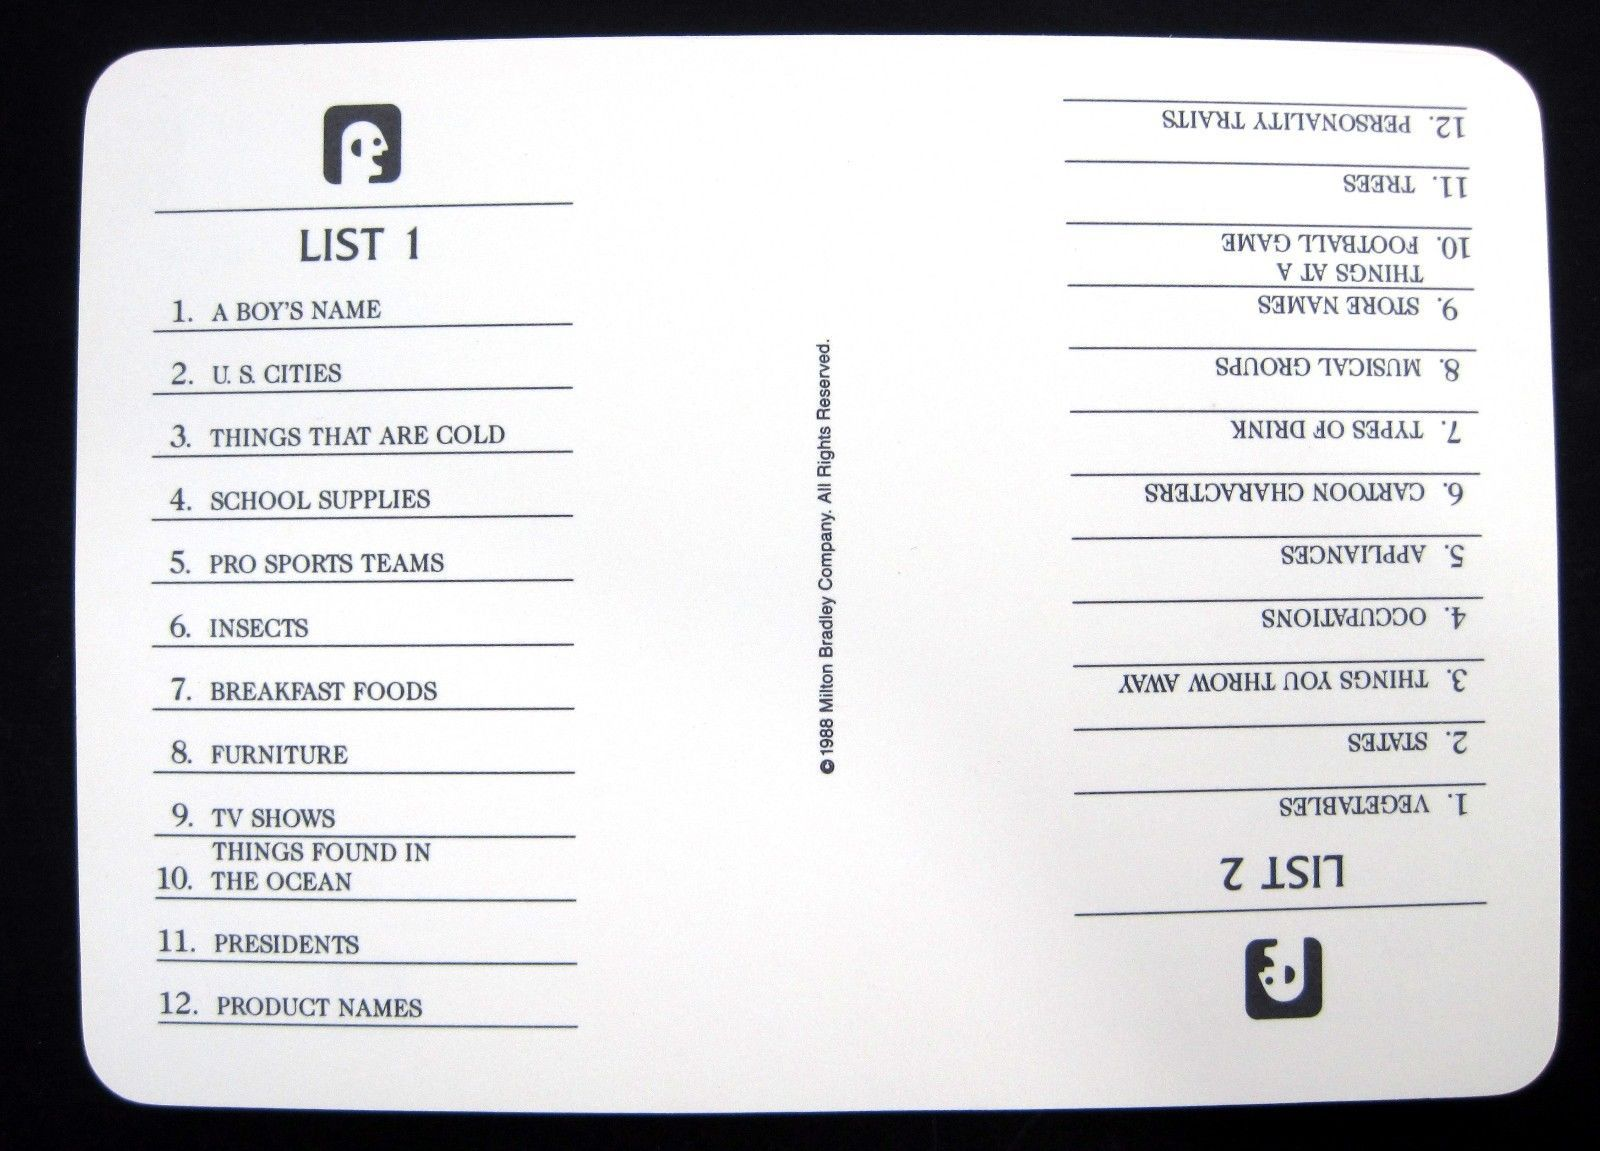 photograph about Scattergories Lists 1-12 Printable identified as 100+ Real Scattergories Classes yasminroohi